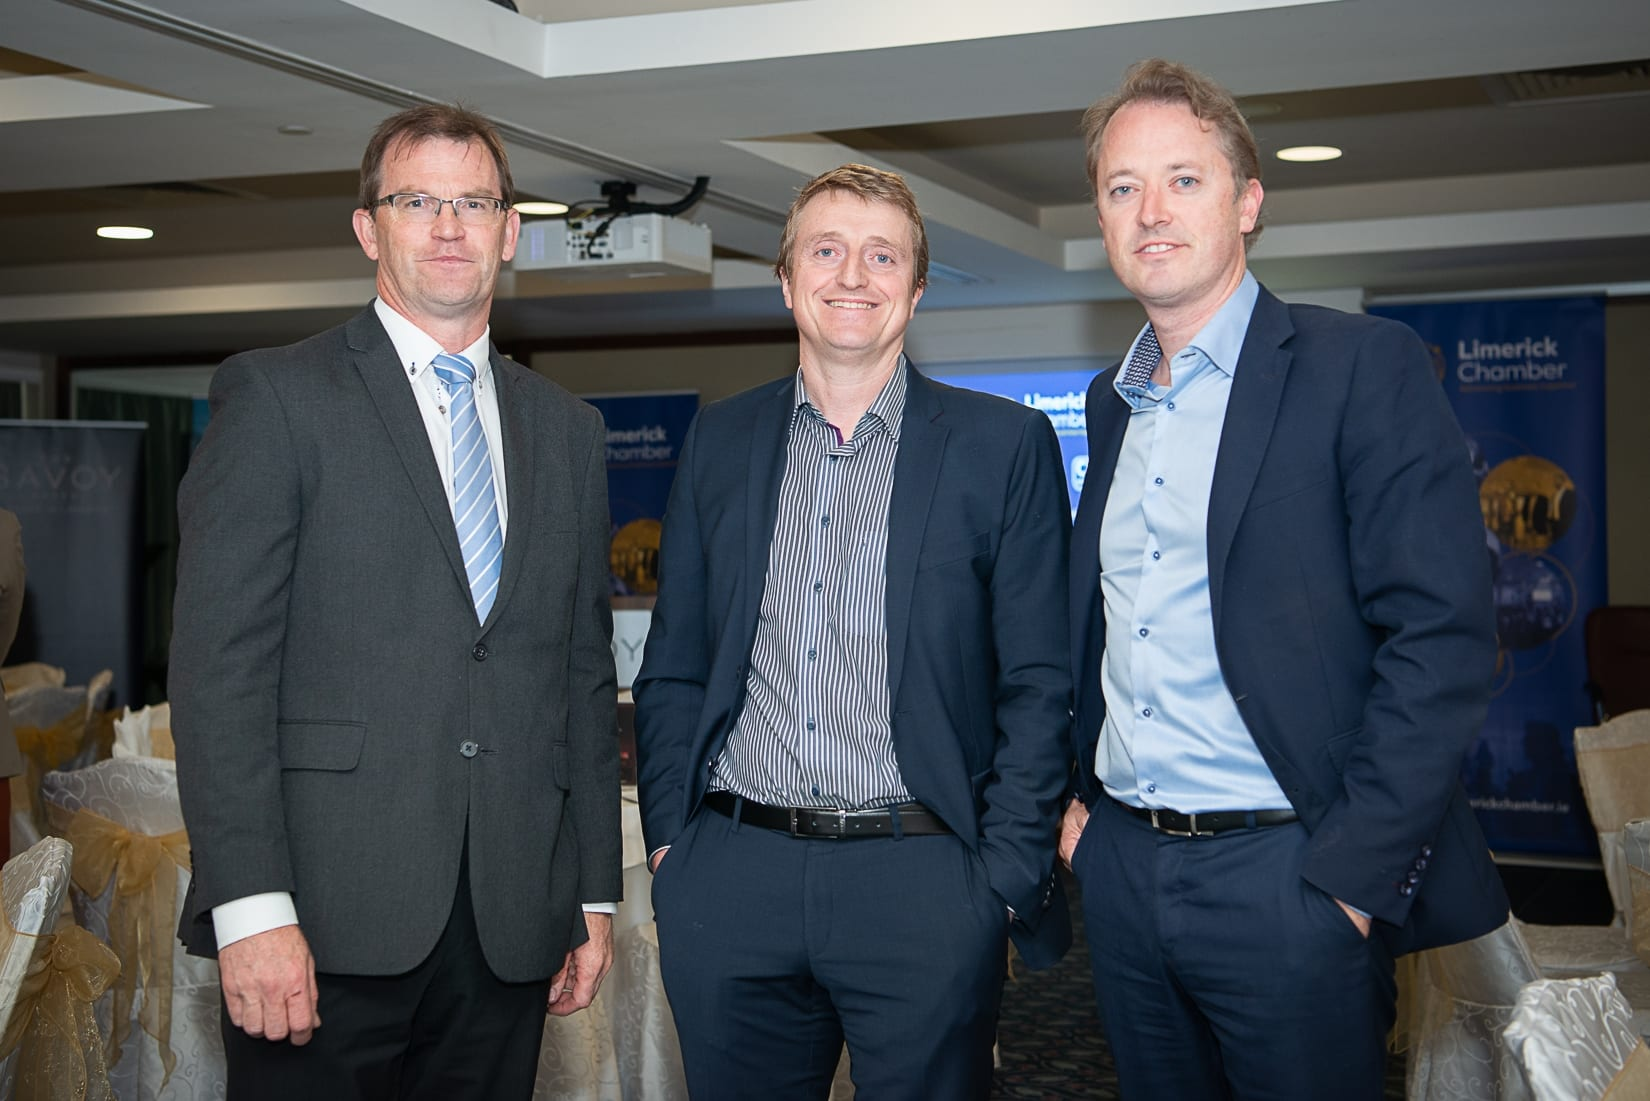 No repro fee-Limerick Chamber Autumn Luncheon which was held in The Savoy Hotel on Monday 23rd September - From Left to Right: Alan Luby - PWC, Sean Arkins - Techno Path, John Daly - PWC.  Photo credit Shauna Kennedy